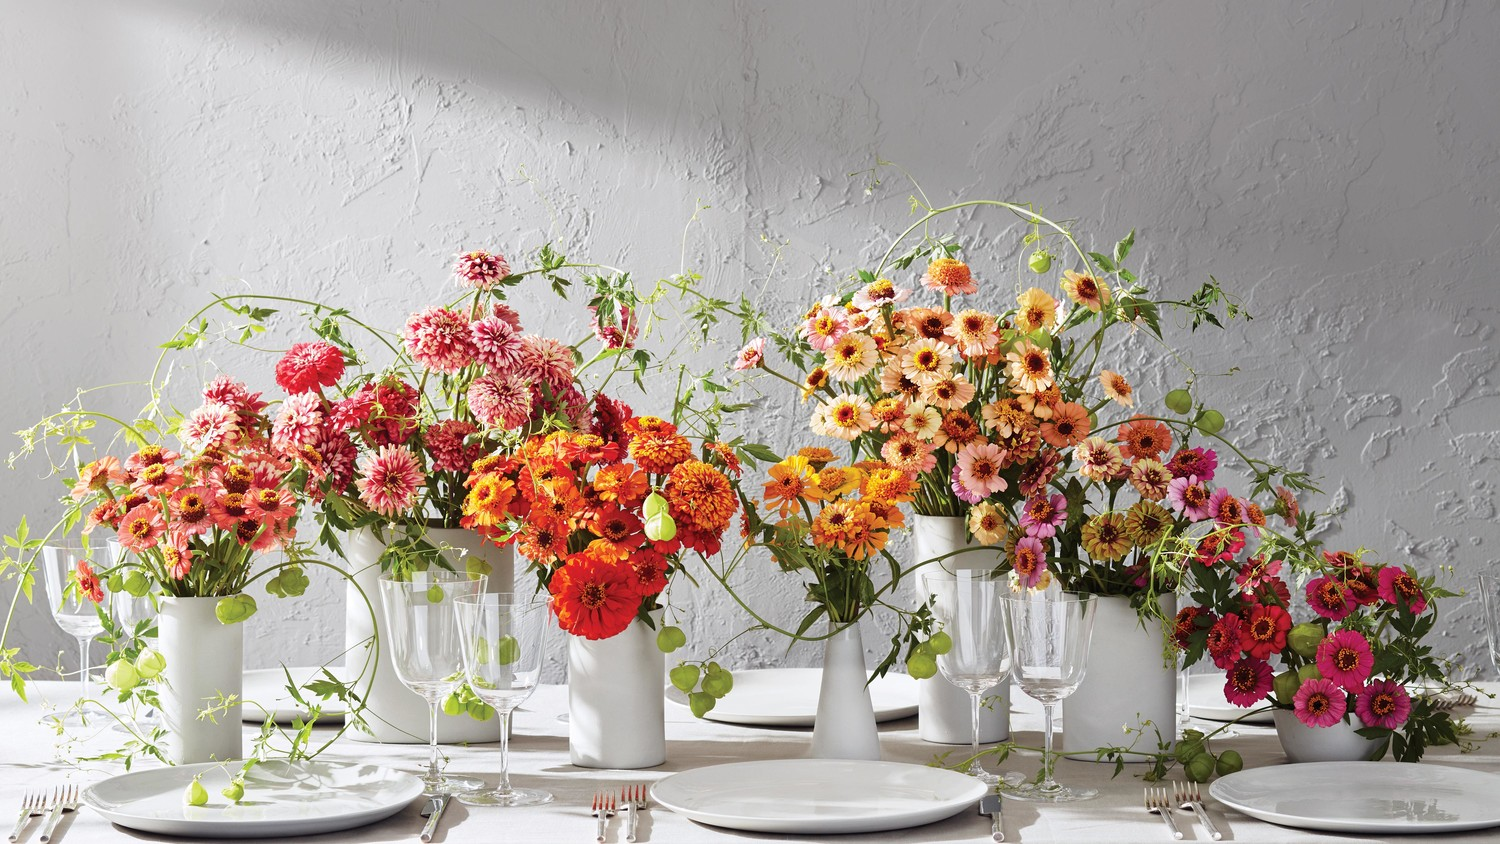 5 Stunning Ways To Use Zinnias In Your Wedding